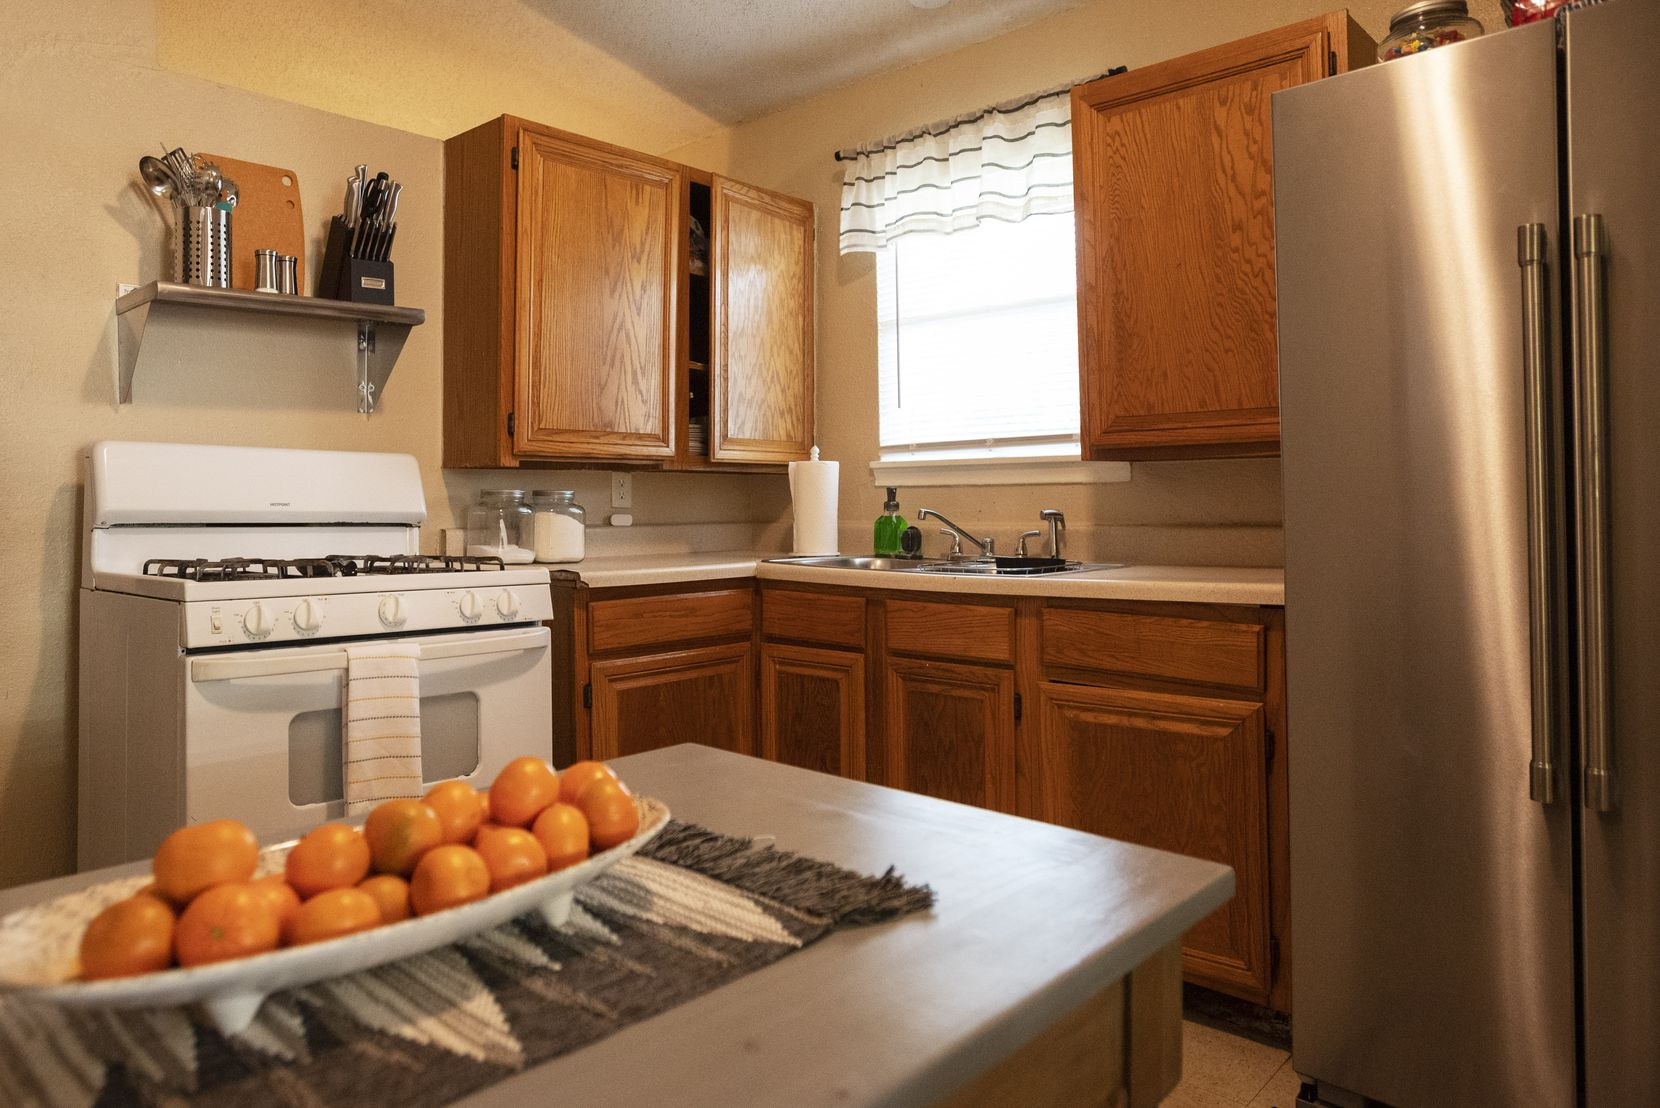 Kimberly Bobb's newly decorated kitchen includes a full-size refrigerator, which replaces the too-small fridge her family had been relying on.